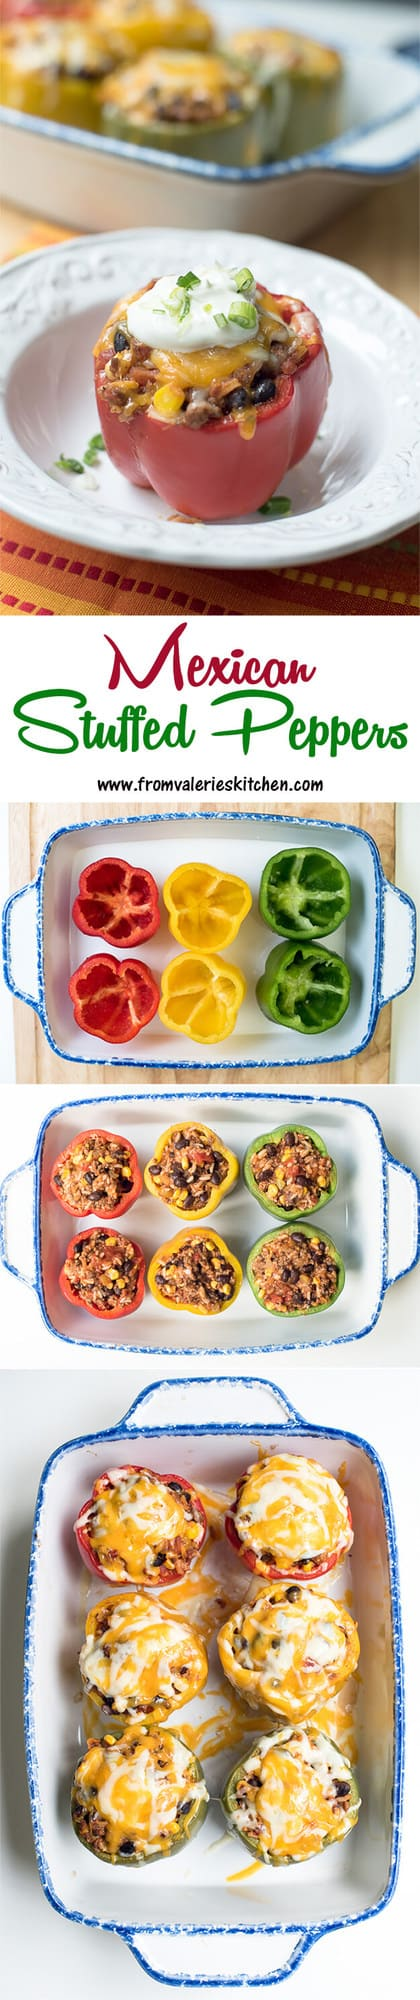 Mexican Stuffed Peppers | From Valerie's Kitchen